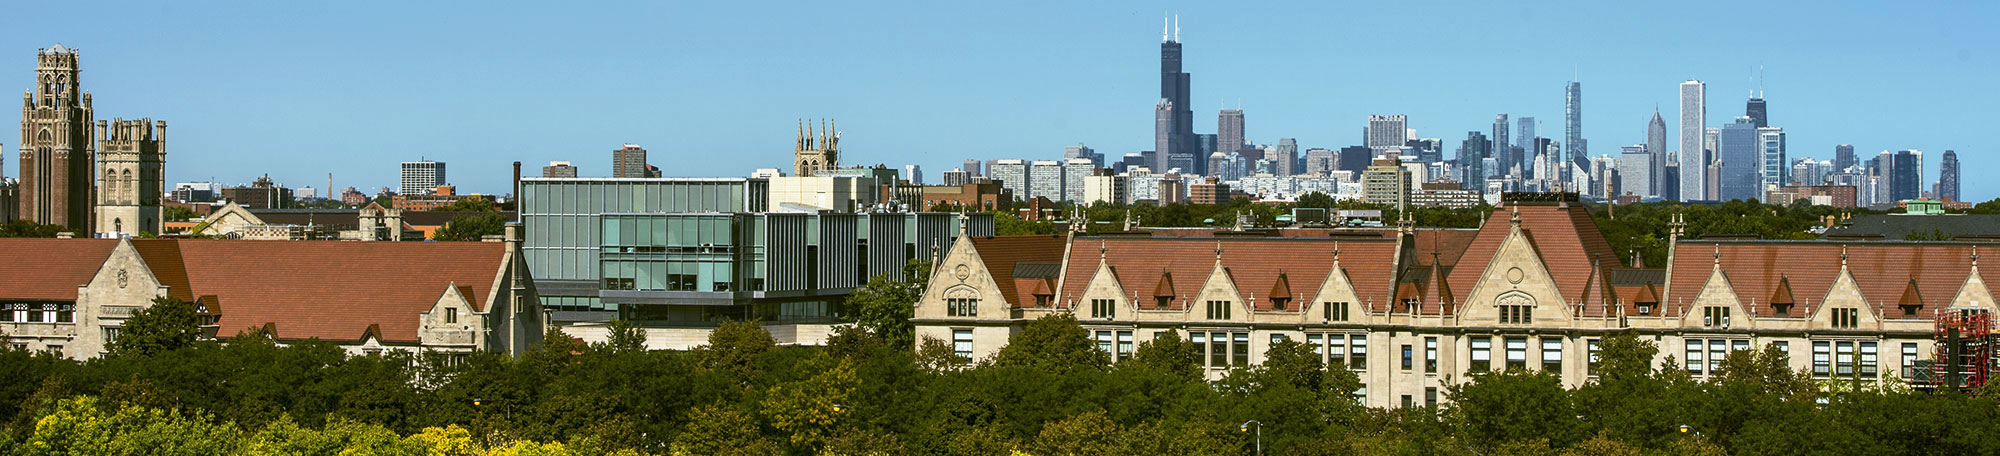 Chicago skyline and a portion of the University of Chicago campus, viewed from the roof of 6045 S. Kenwood Ave.,